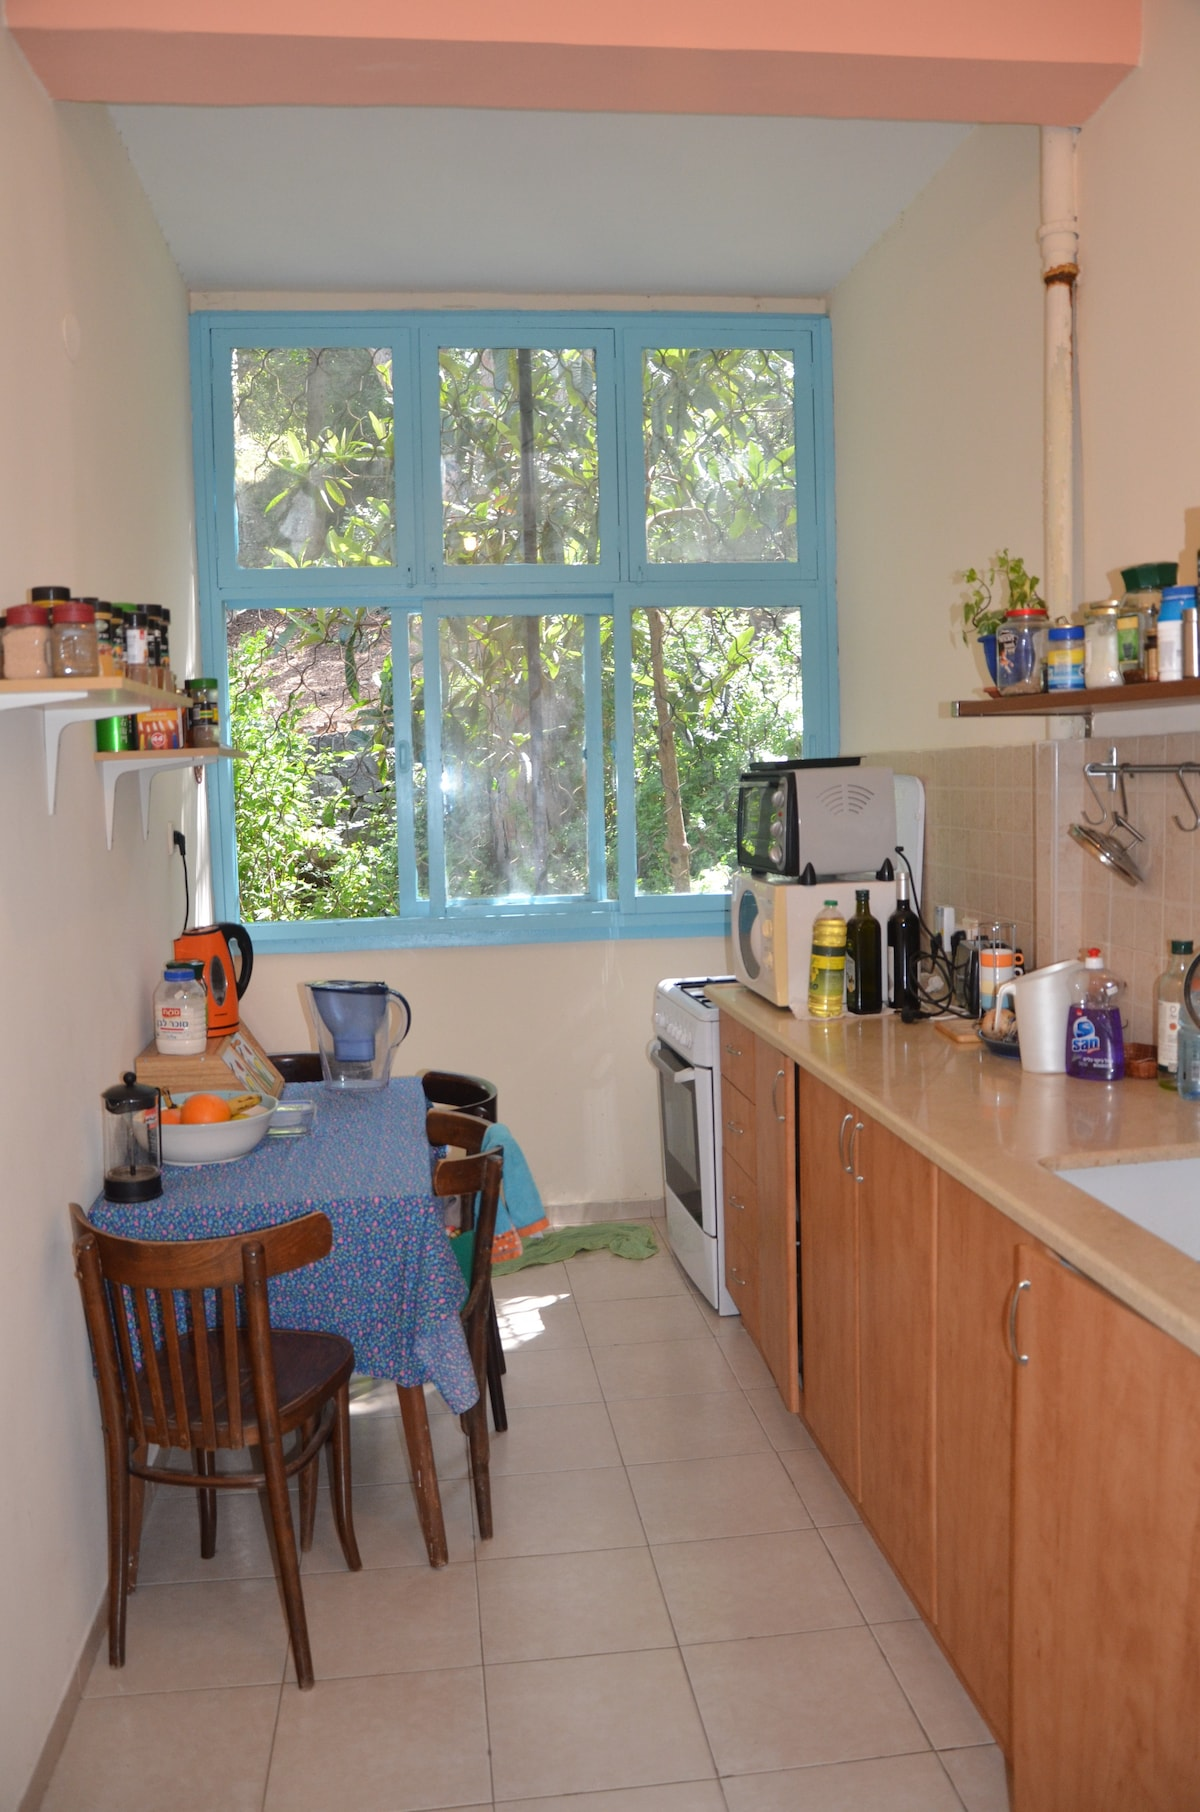 A Beautiful fully equipped kitchen